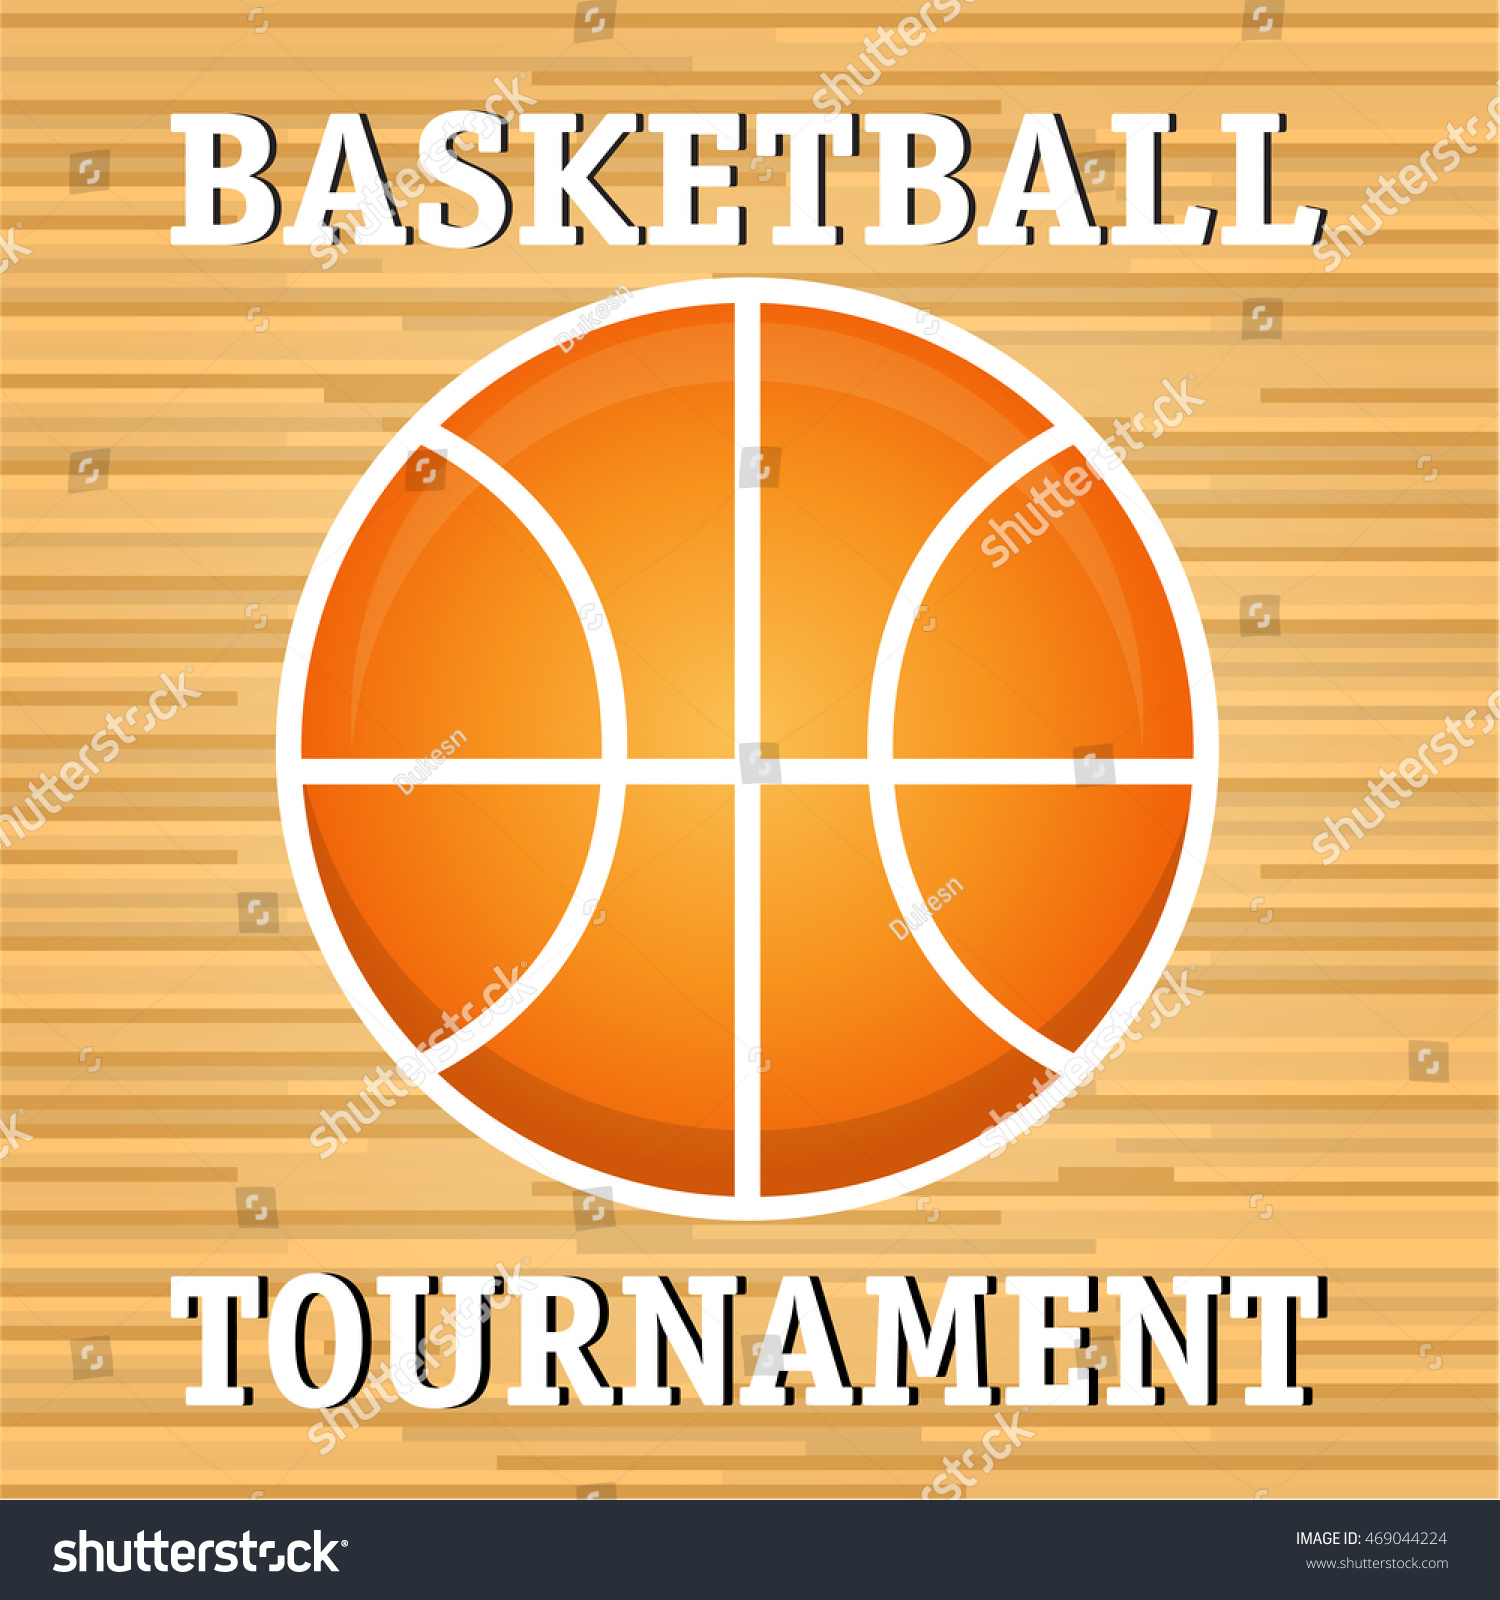 Sports portals, competitions, tournaments: a selection of sites